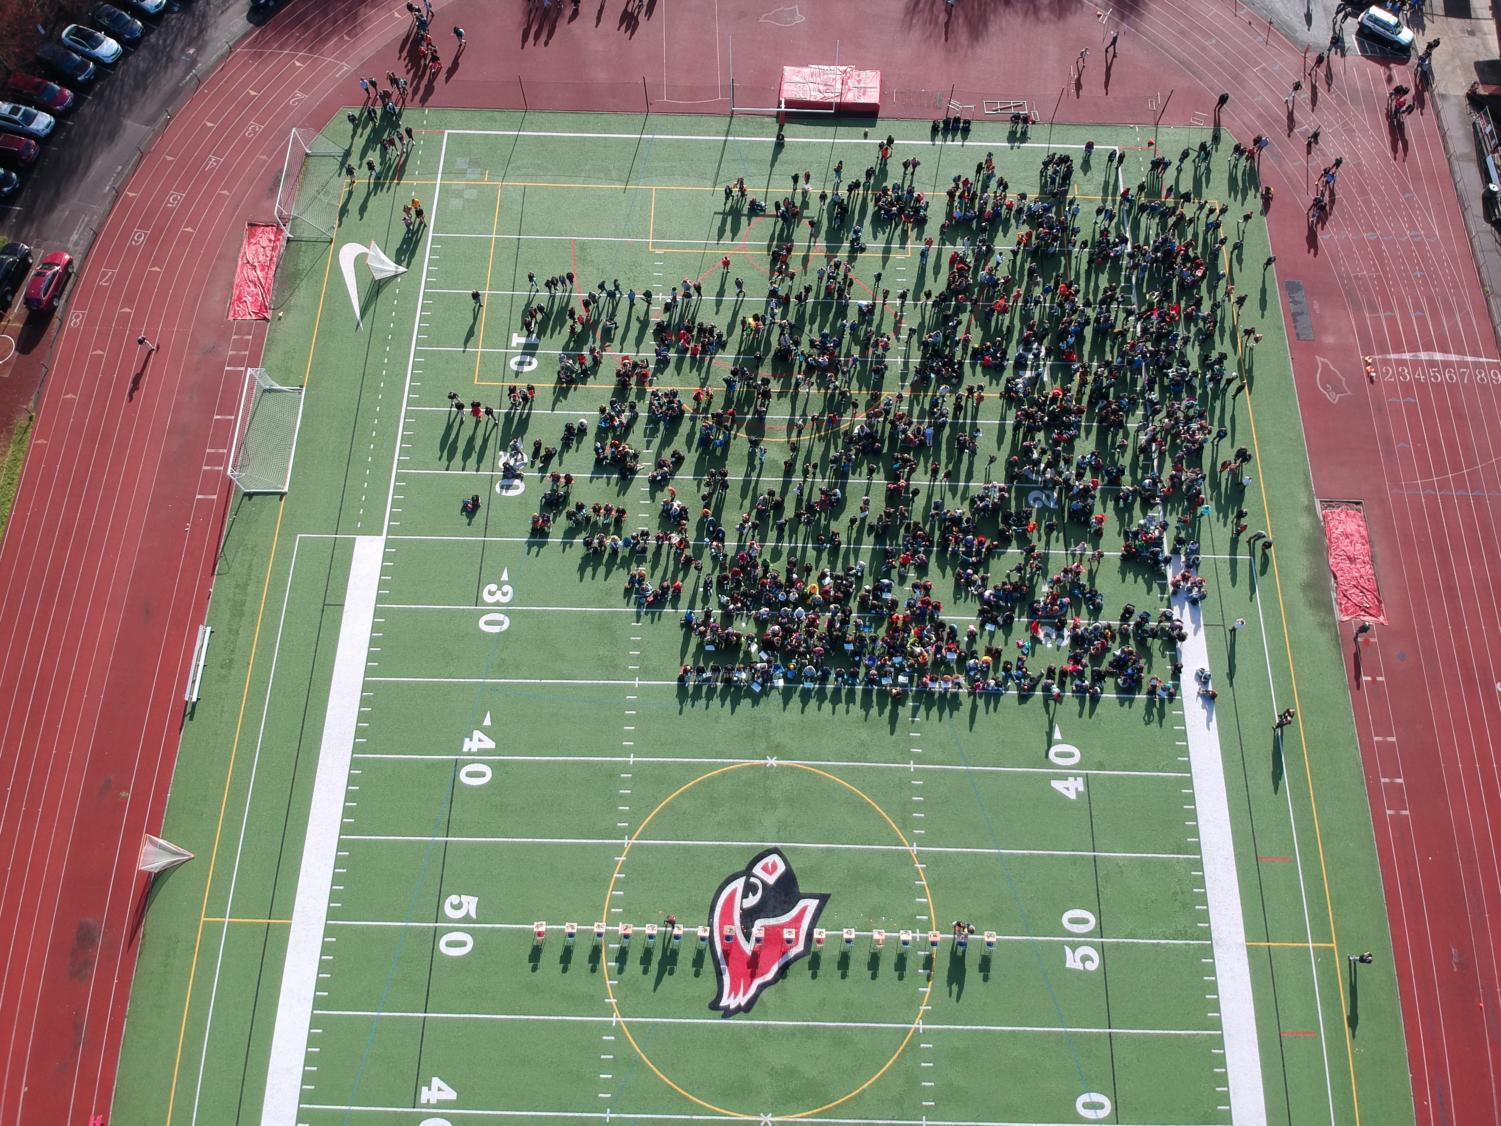 Students gather on the field to pay respect for the 17 students who lost their lives in Parkland, Florida on March 14.